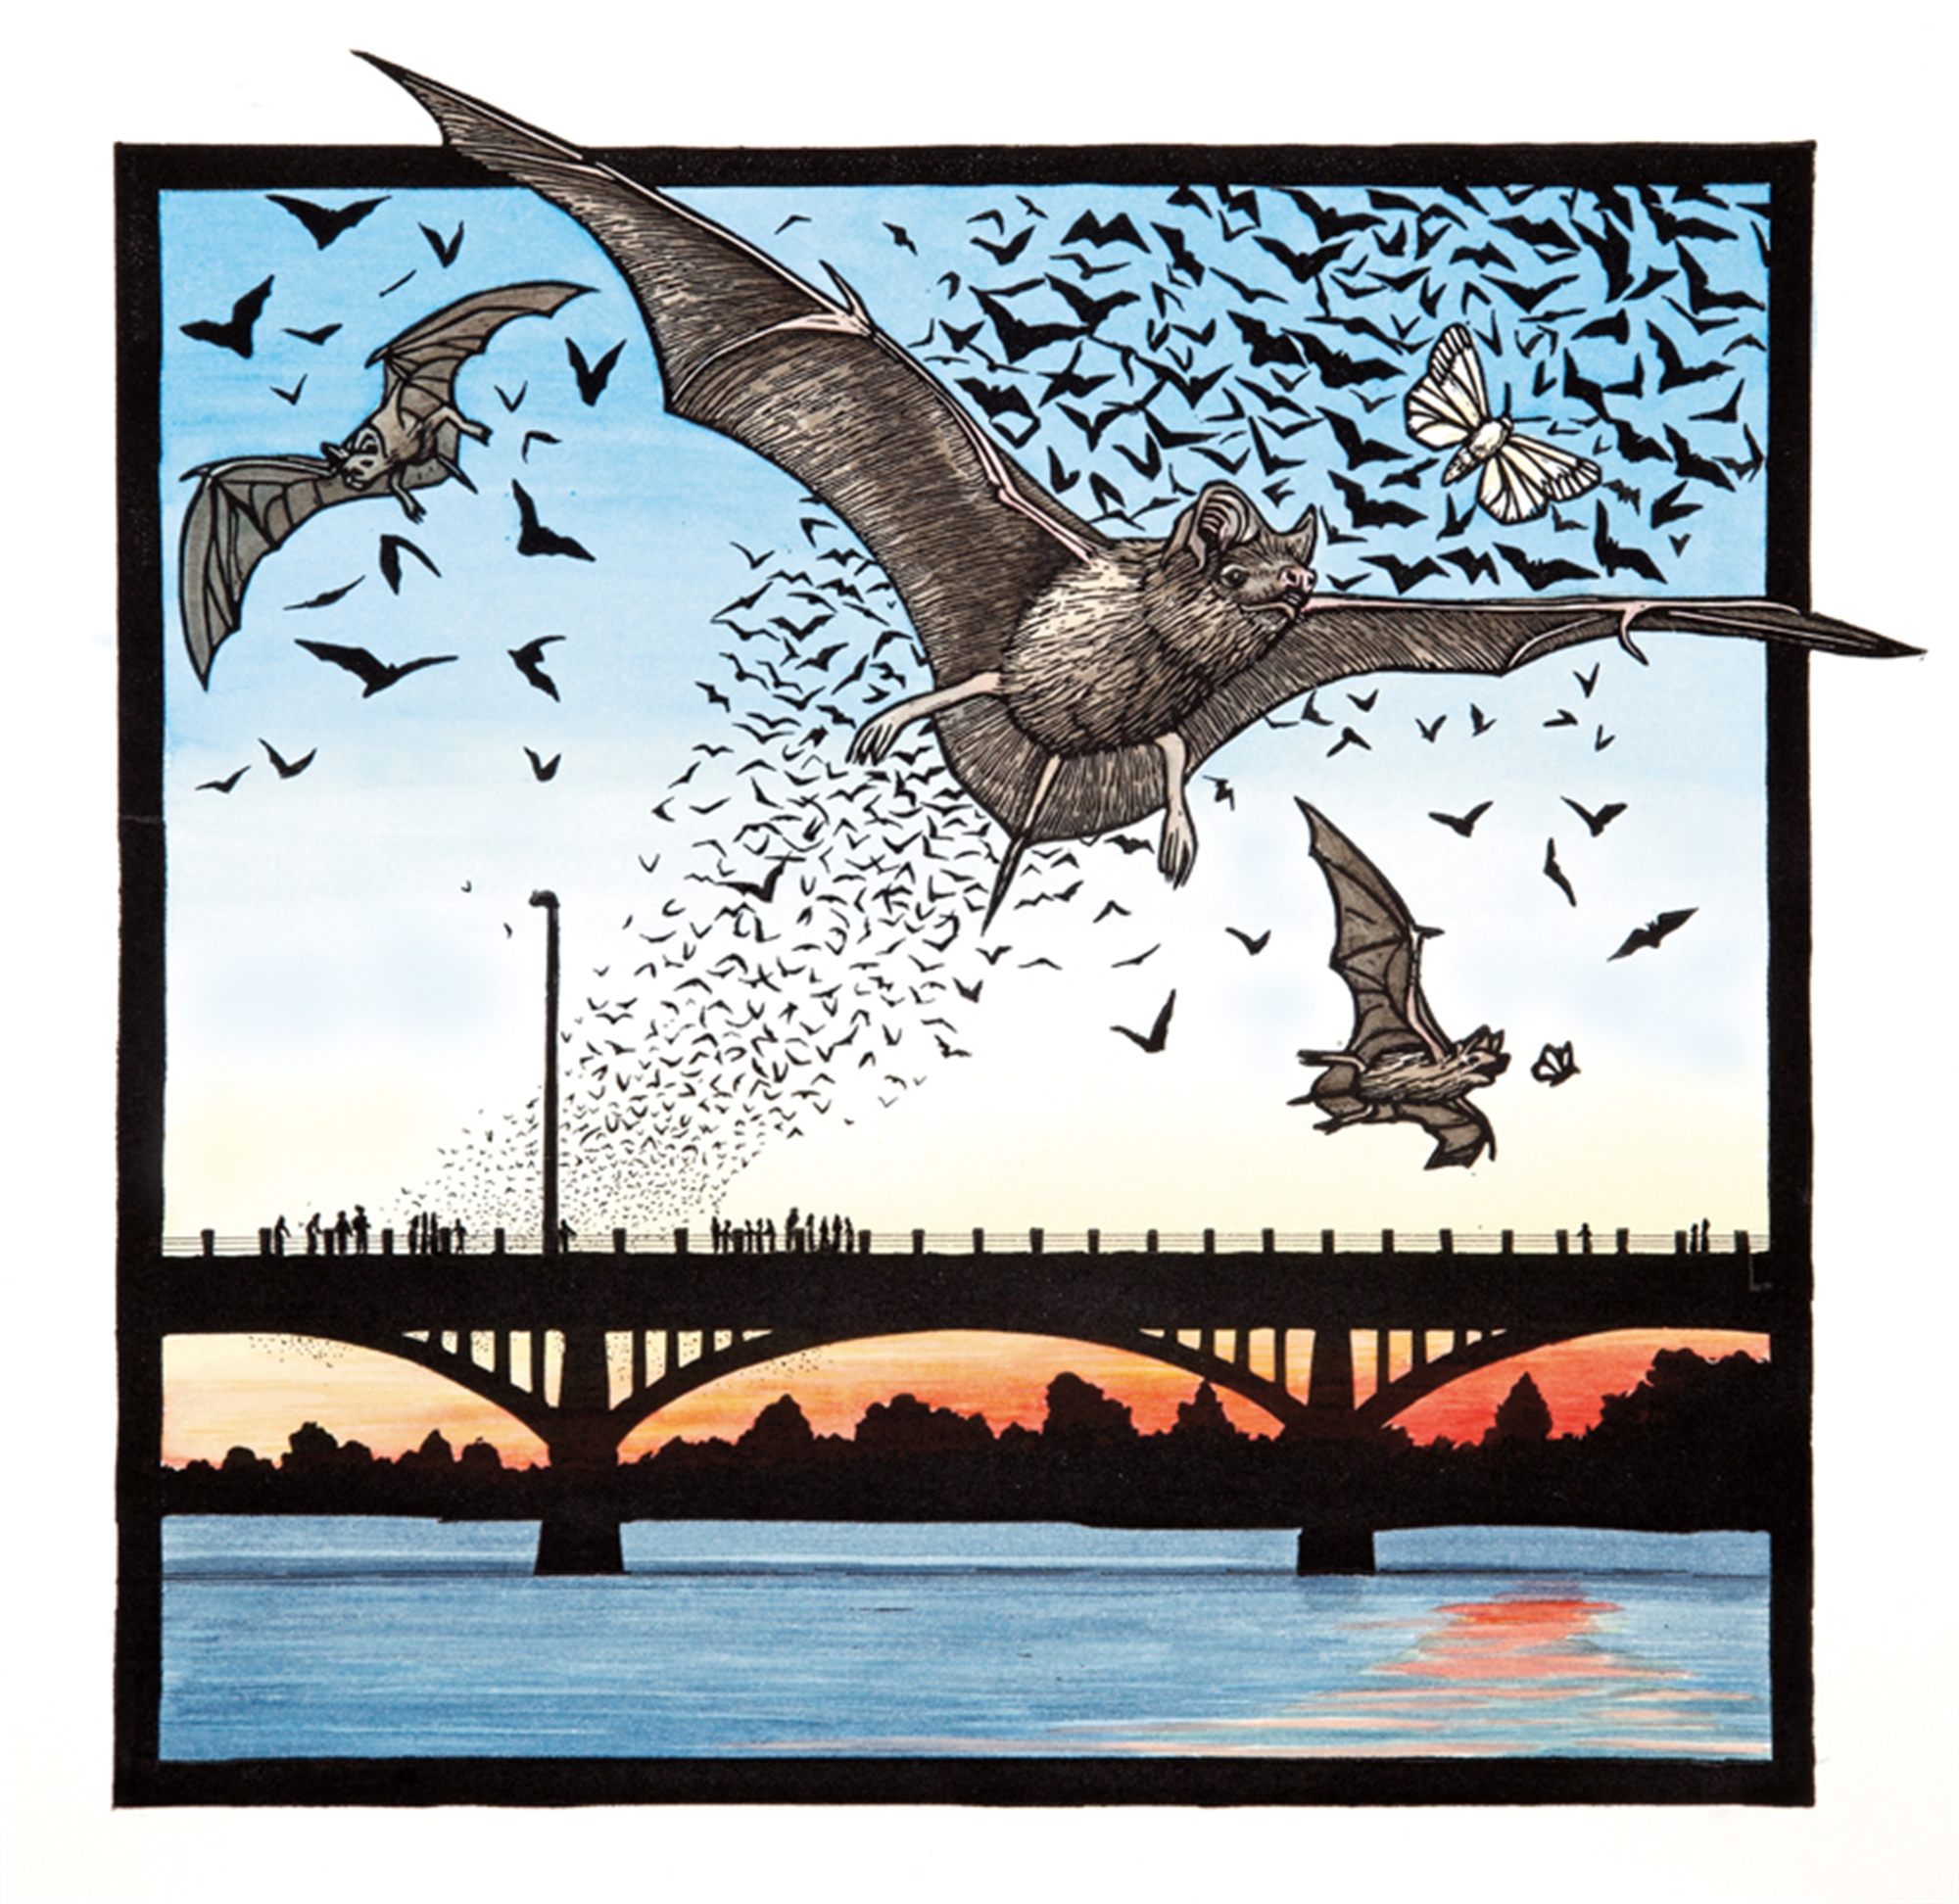 Bats & Congress Avenue Bridge by Margie Crisp